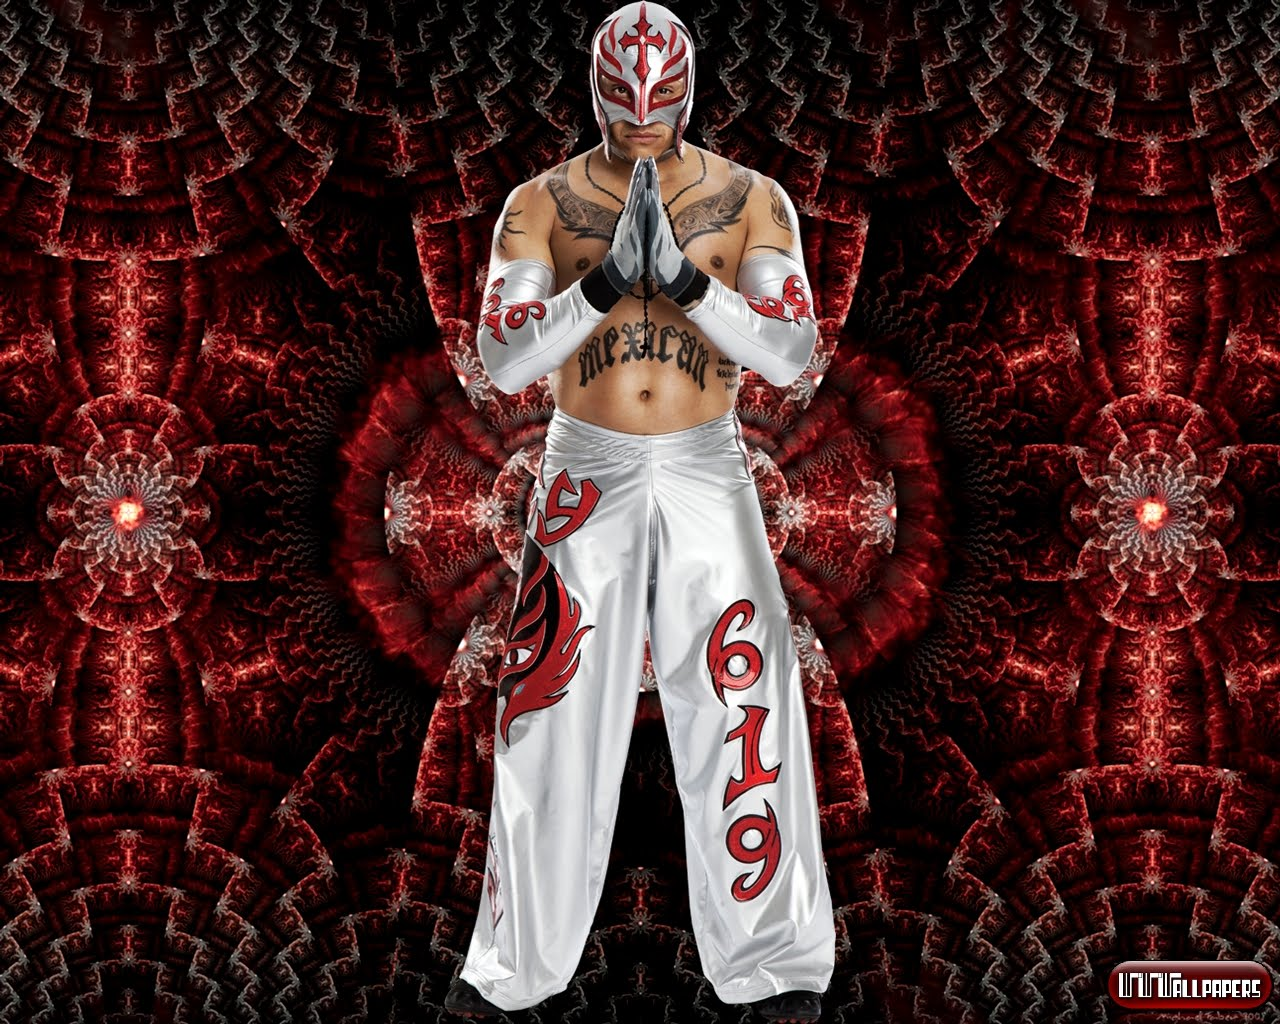 1280x1024 wallpaper: Wallpapers Rey Mysterio Wwe